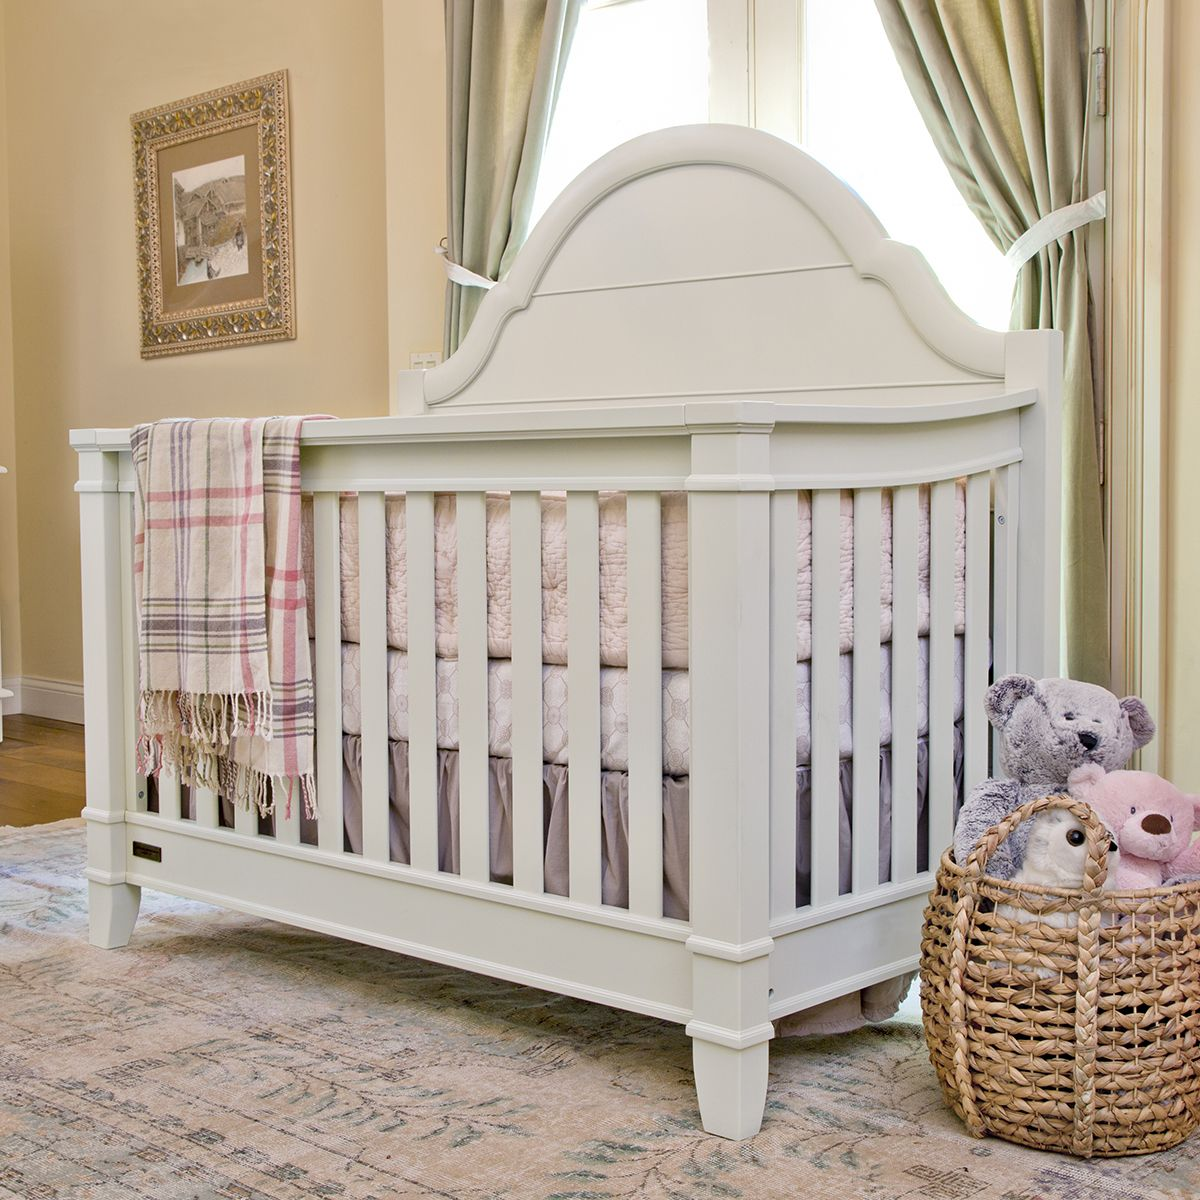 million dollar baby sullivan 4in1 convertible crib in dove white - White Baby Crib